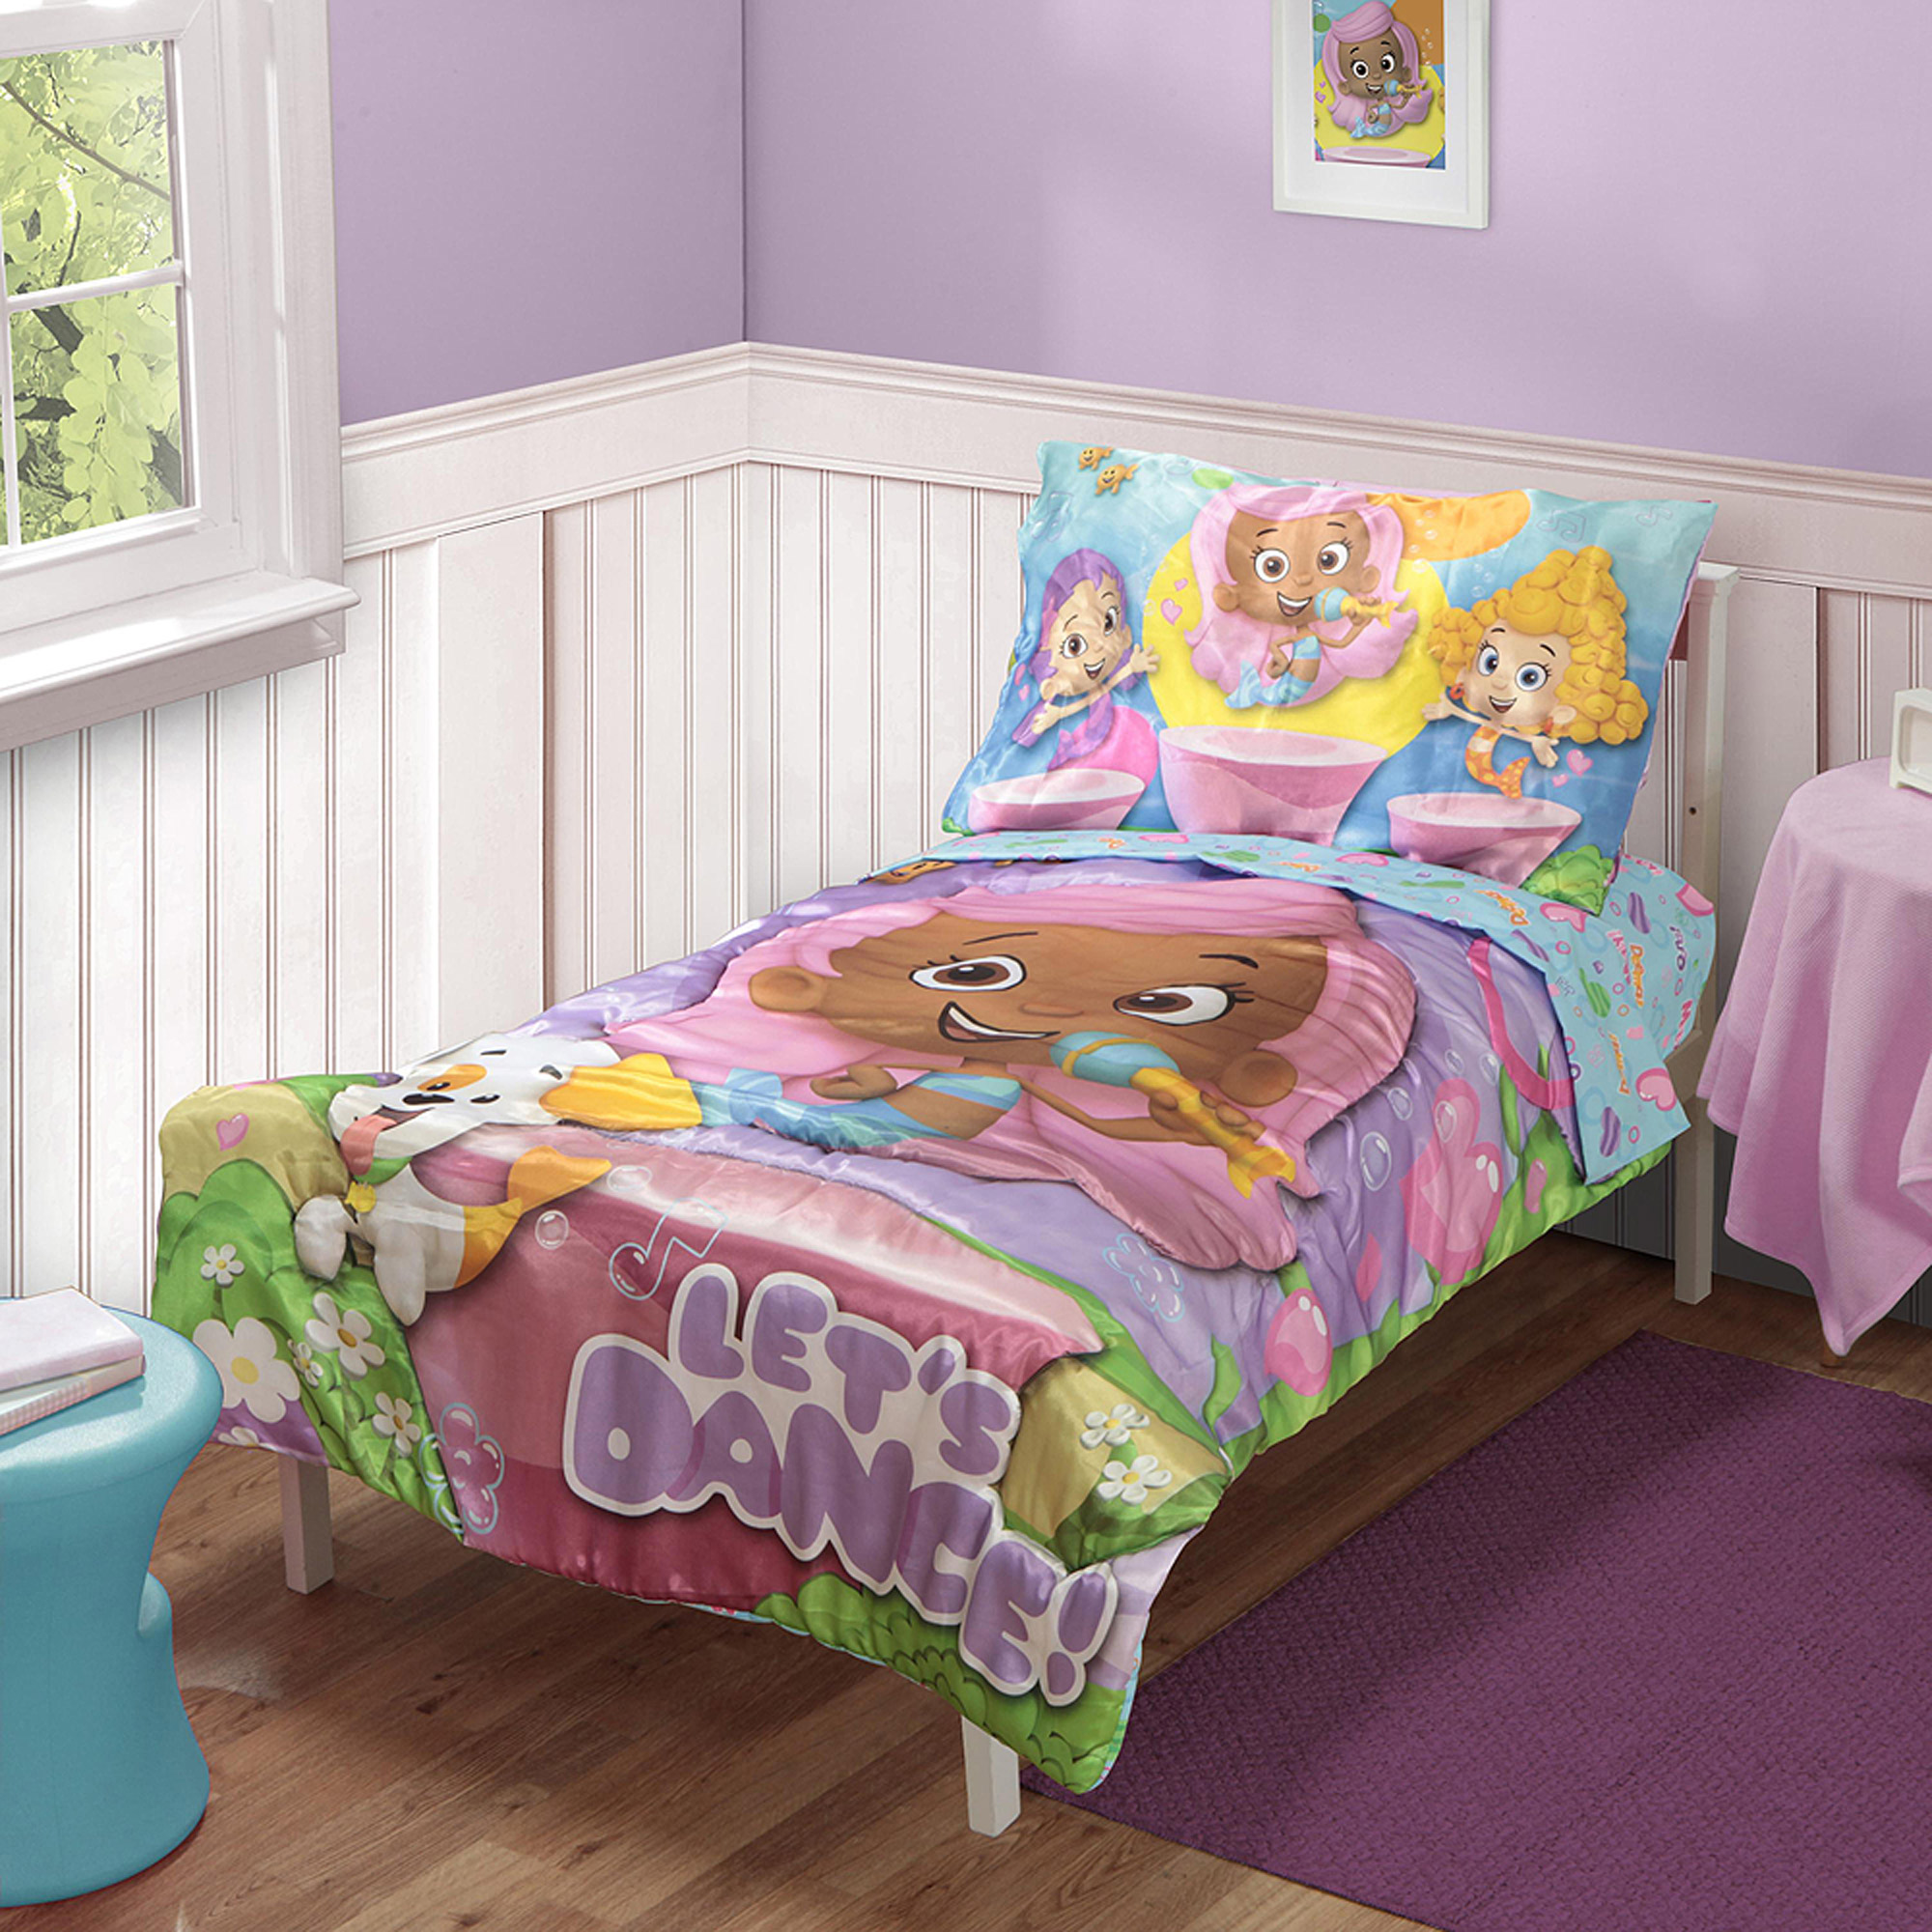 Bubble Guppies 4 pc Toddler Bedding Set